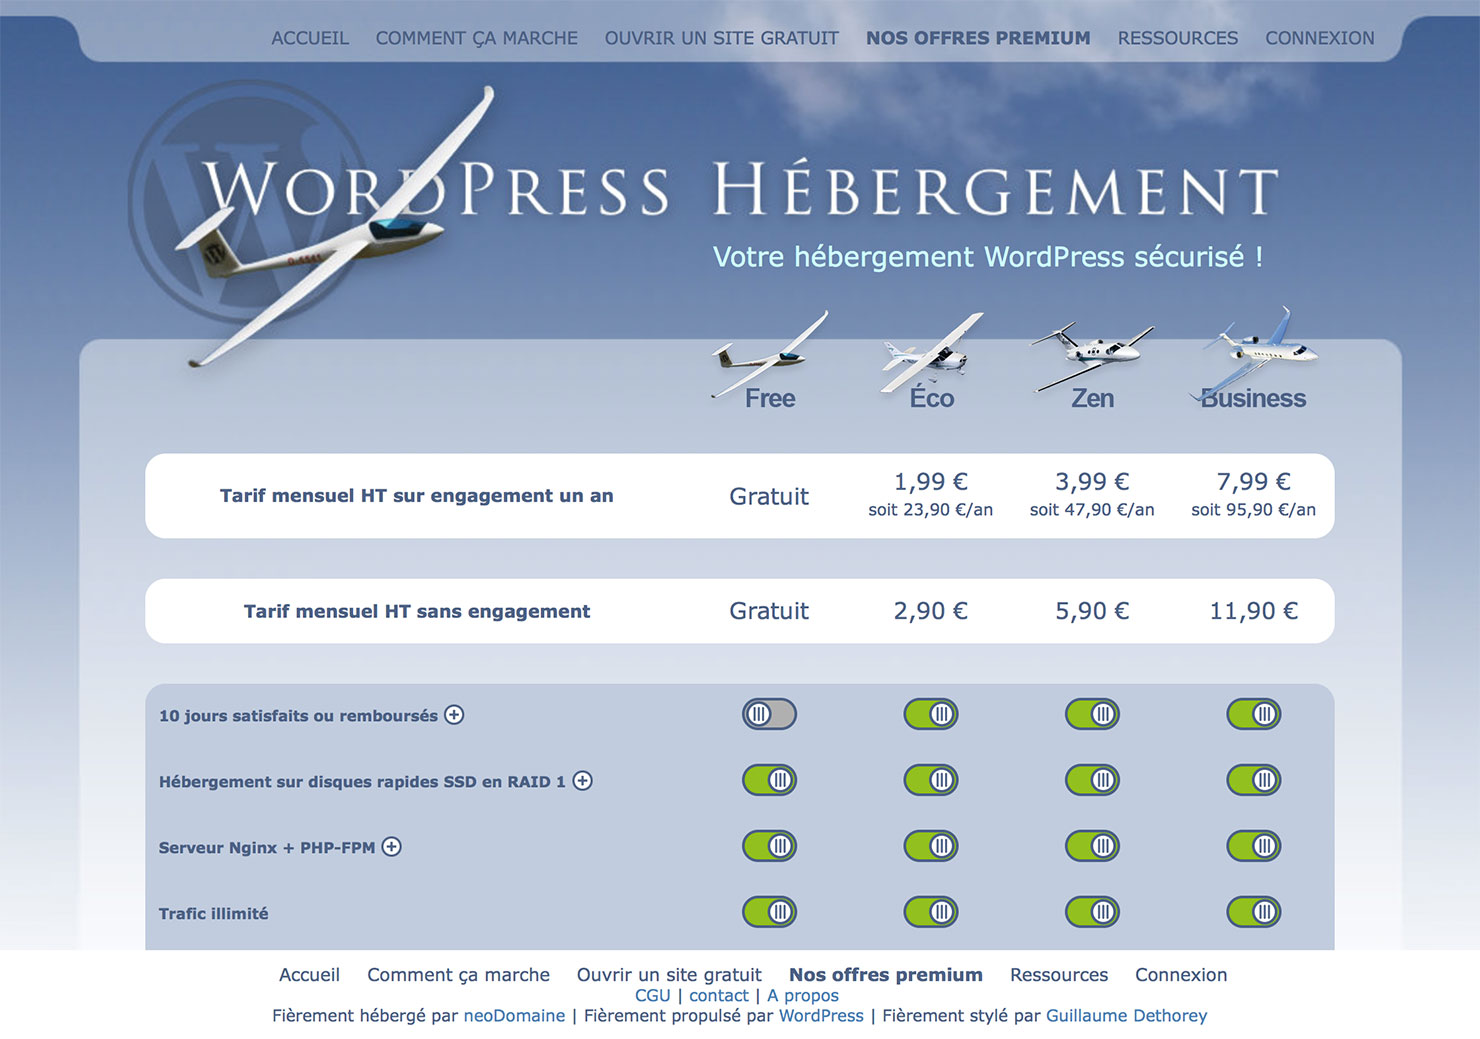 Exemple d'interface du la plateforme WordPress Hébergement